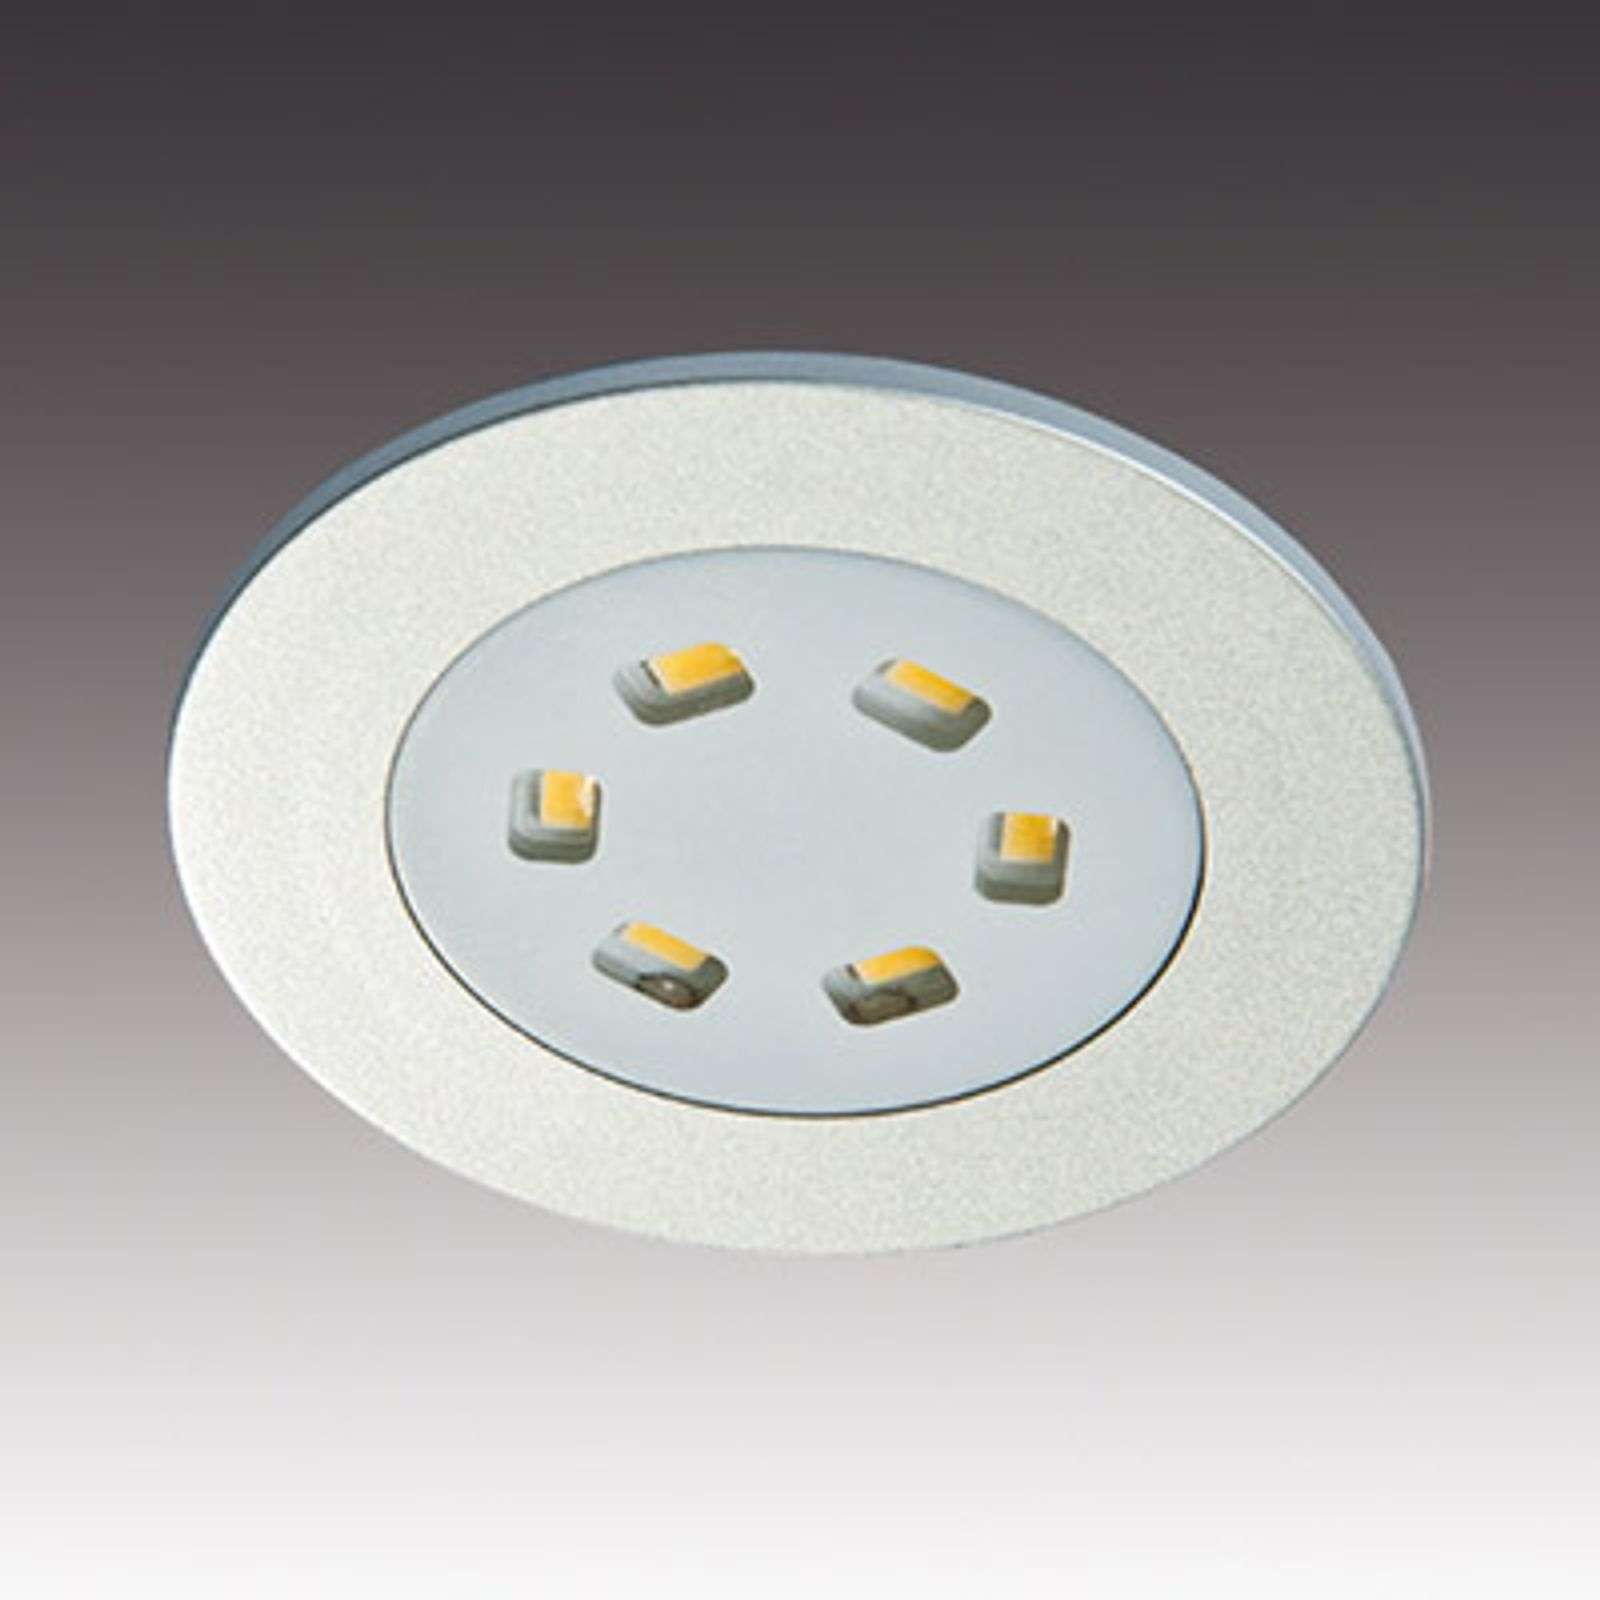 Spot encastrable plat LED R 55